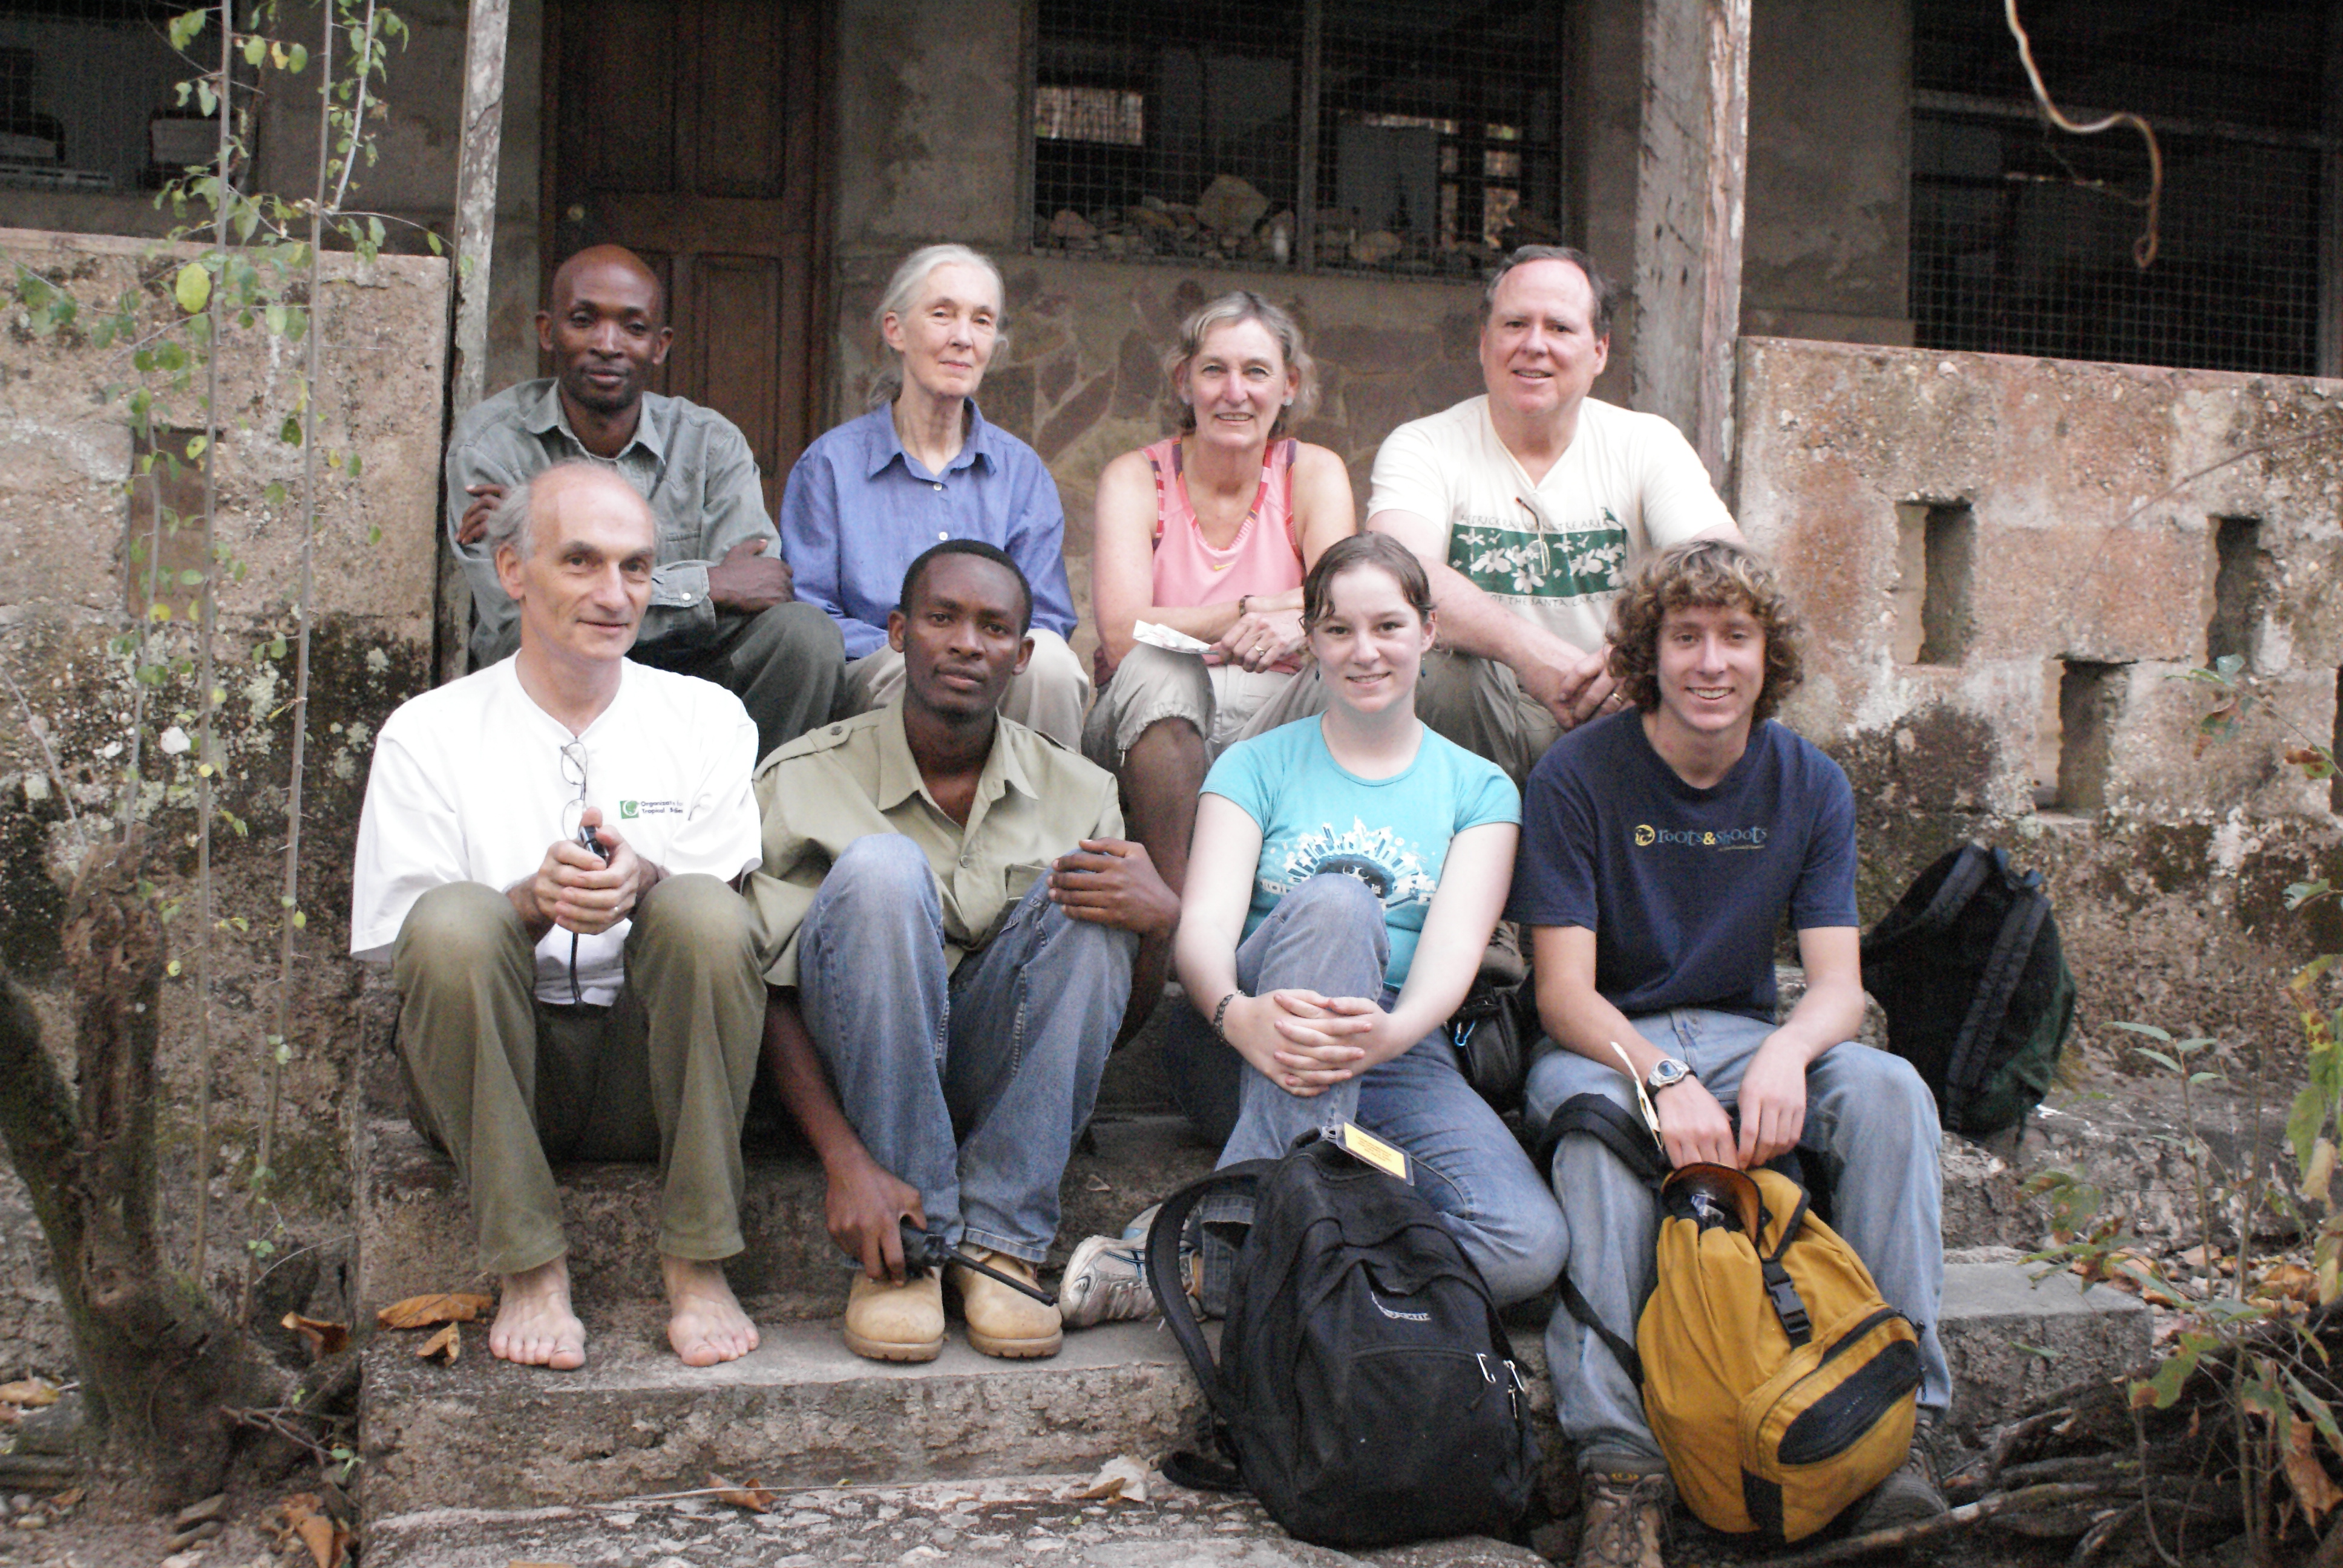 Merrick and her family with Jane Goodall at Gombe Research Centre